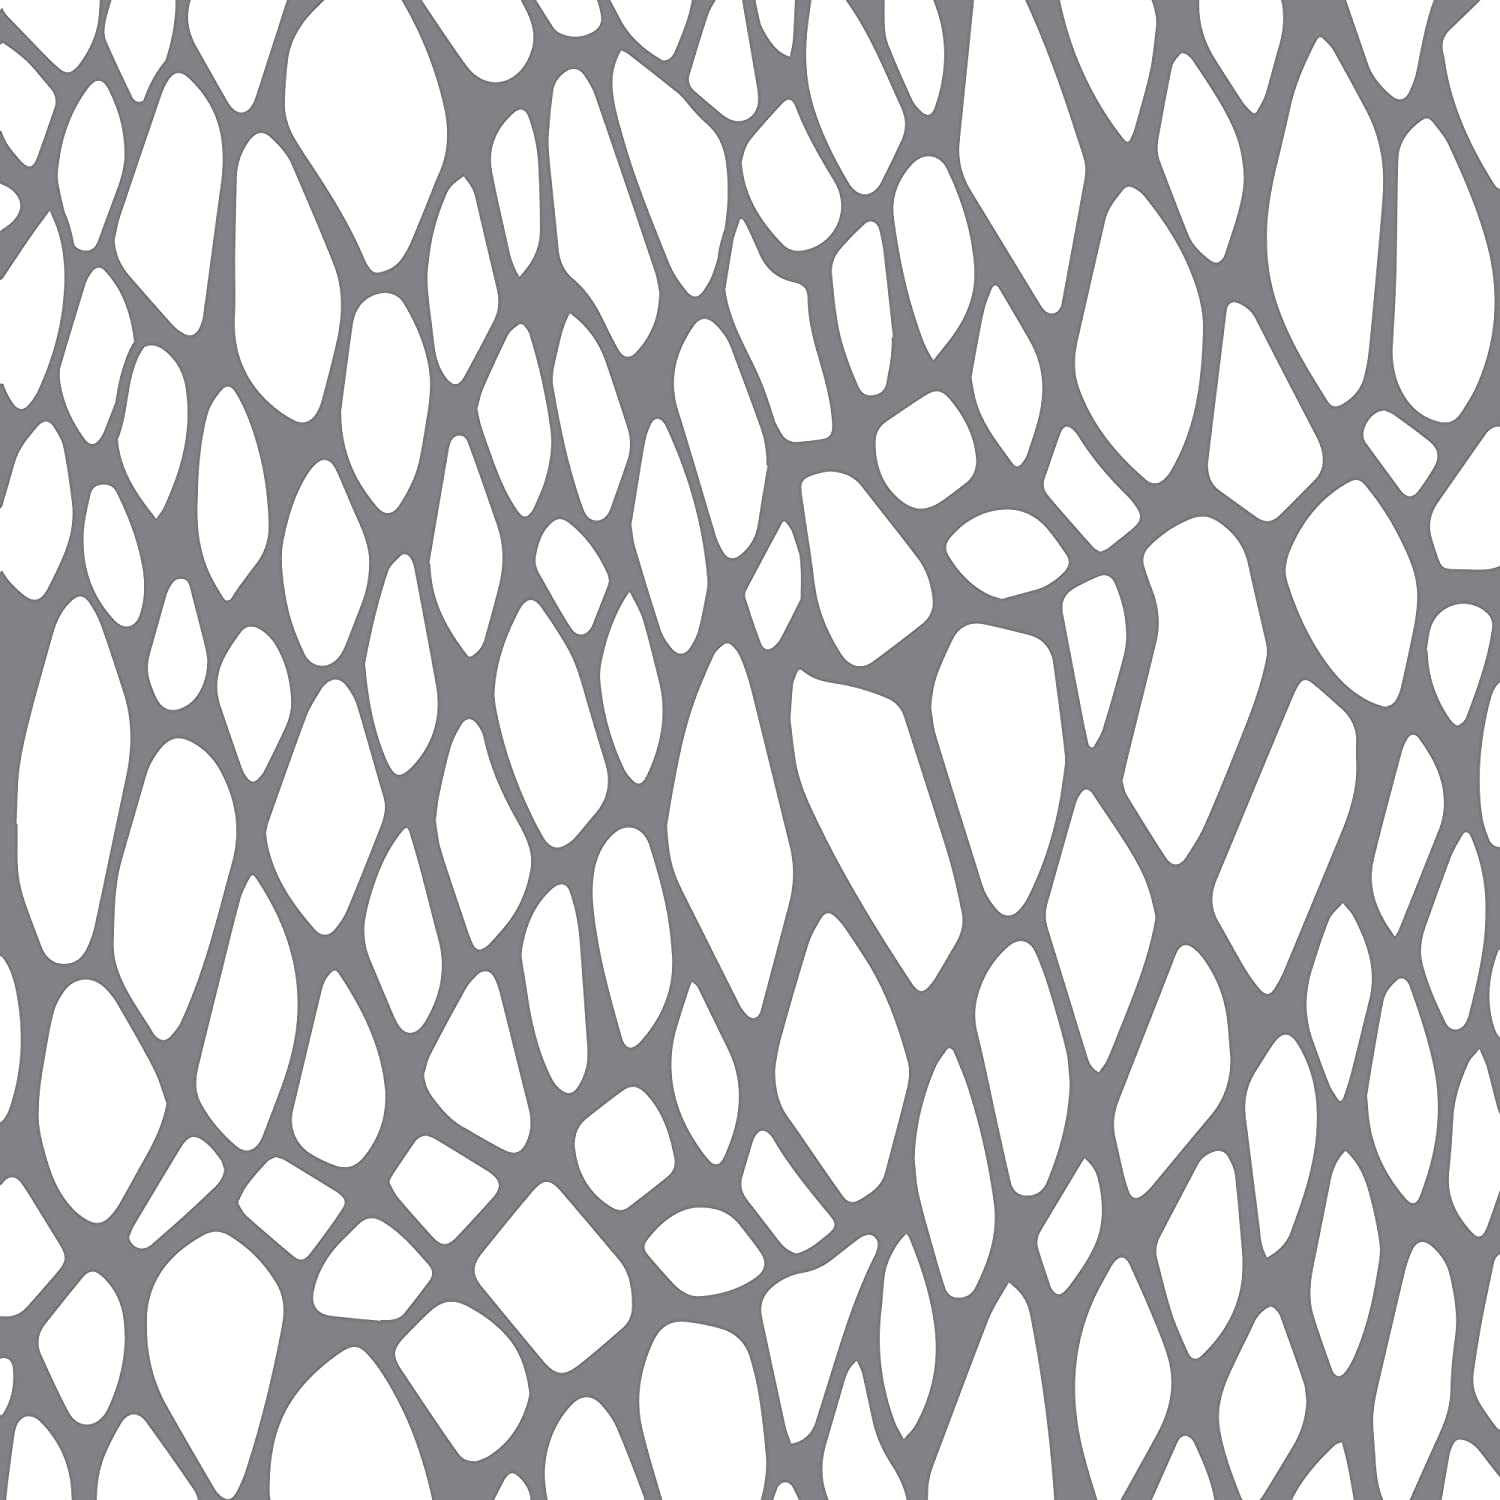 Andy Skinner Mixed Media Snake's Web Stencil, Grey, 6 x 6-Inch DecoArt ANDY55-K